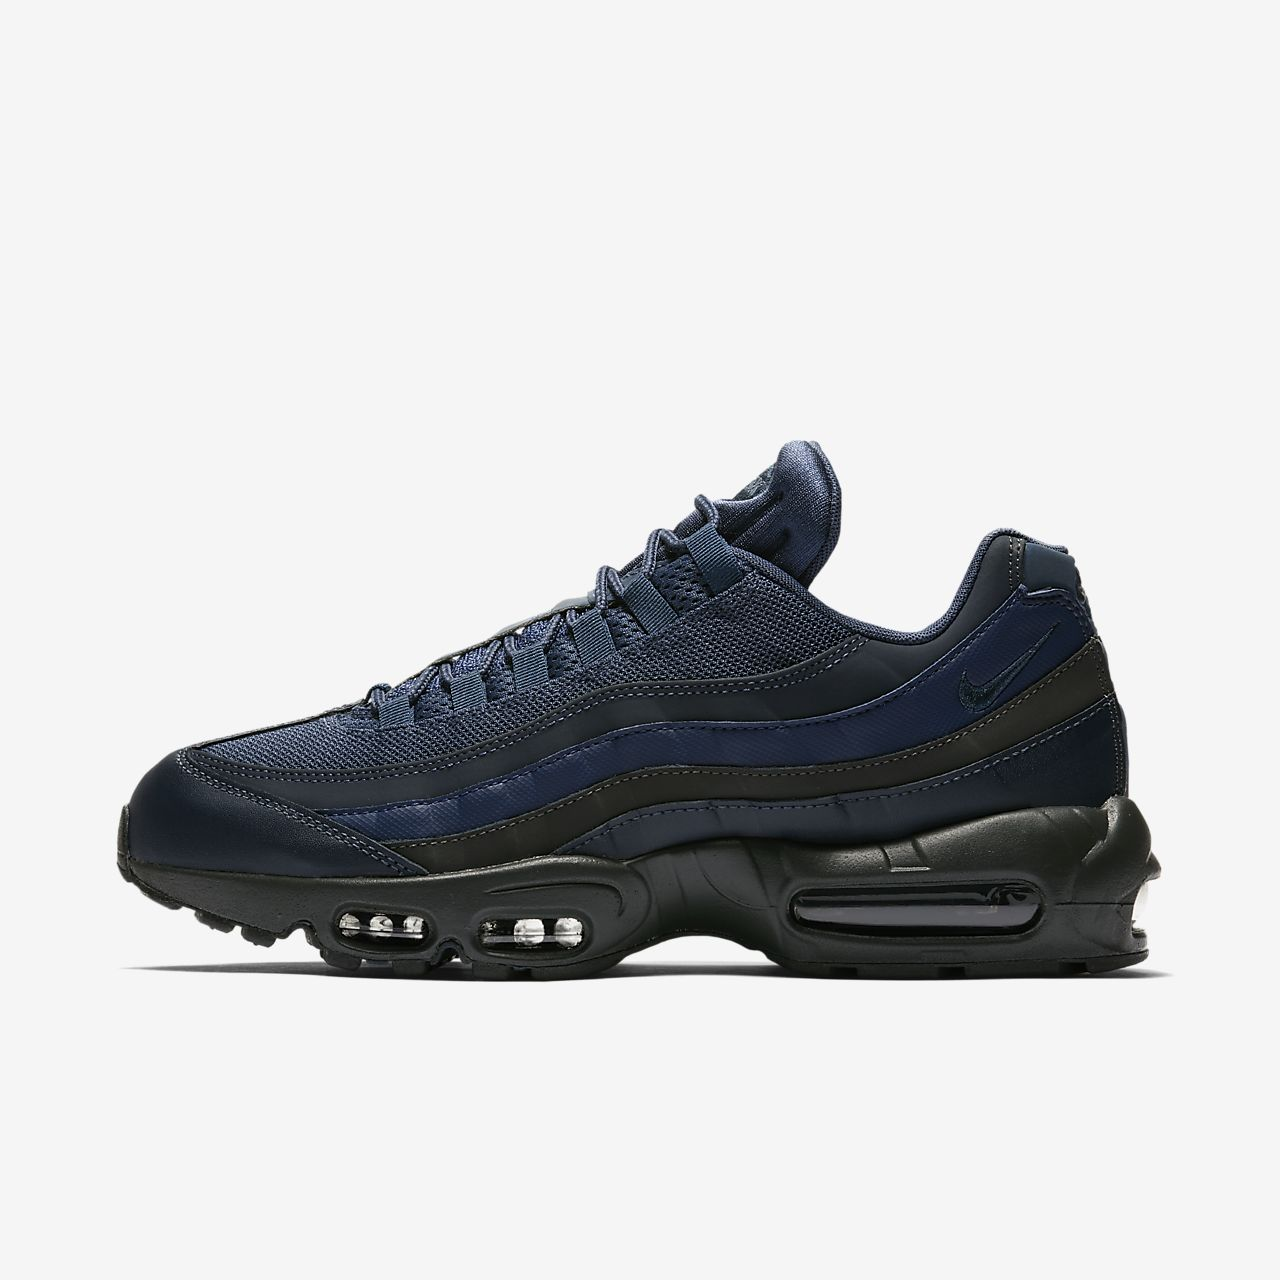 ddbbcc24820 Nike Air Max 95 Essential Men s Shoe. Nike.com GB